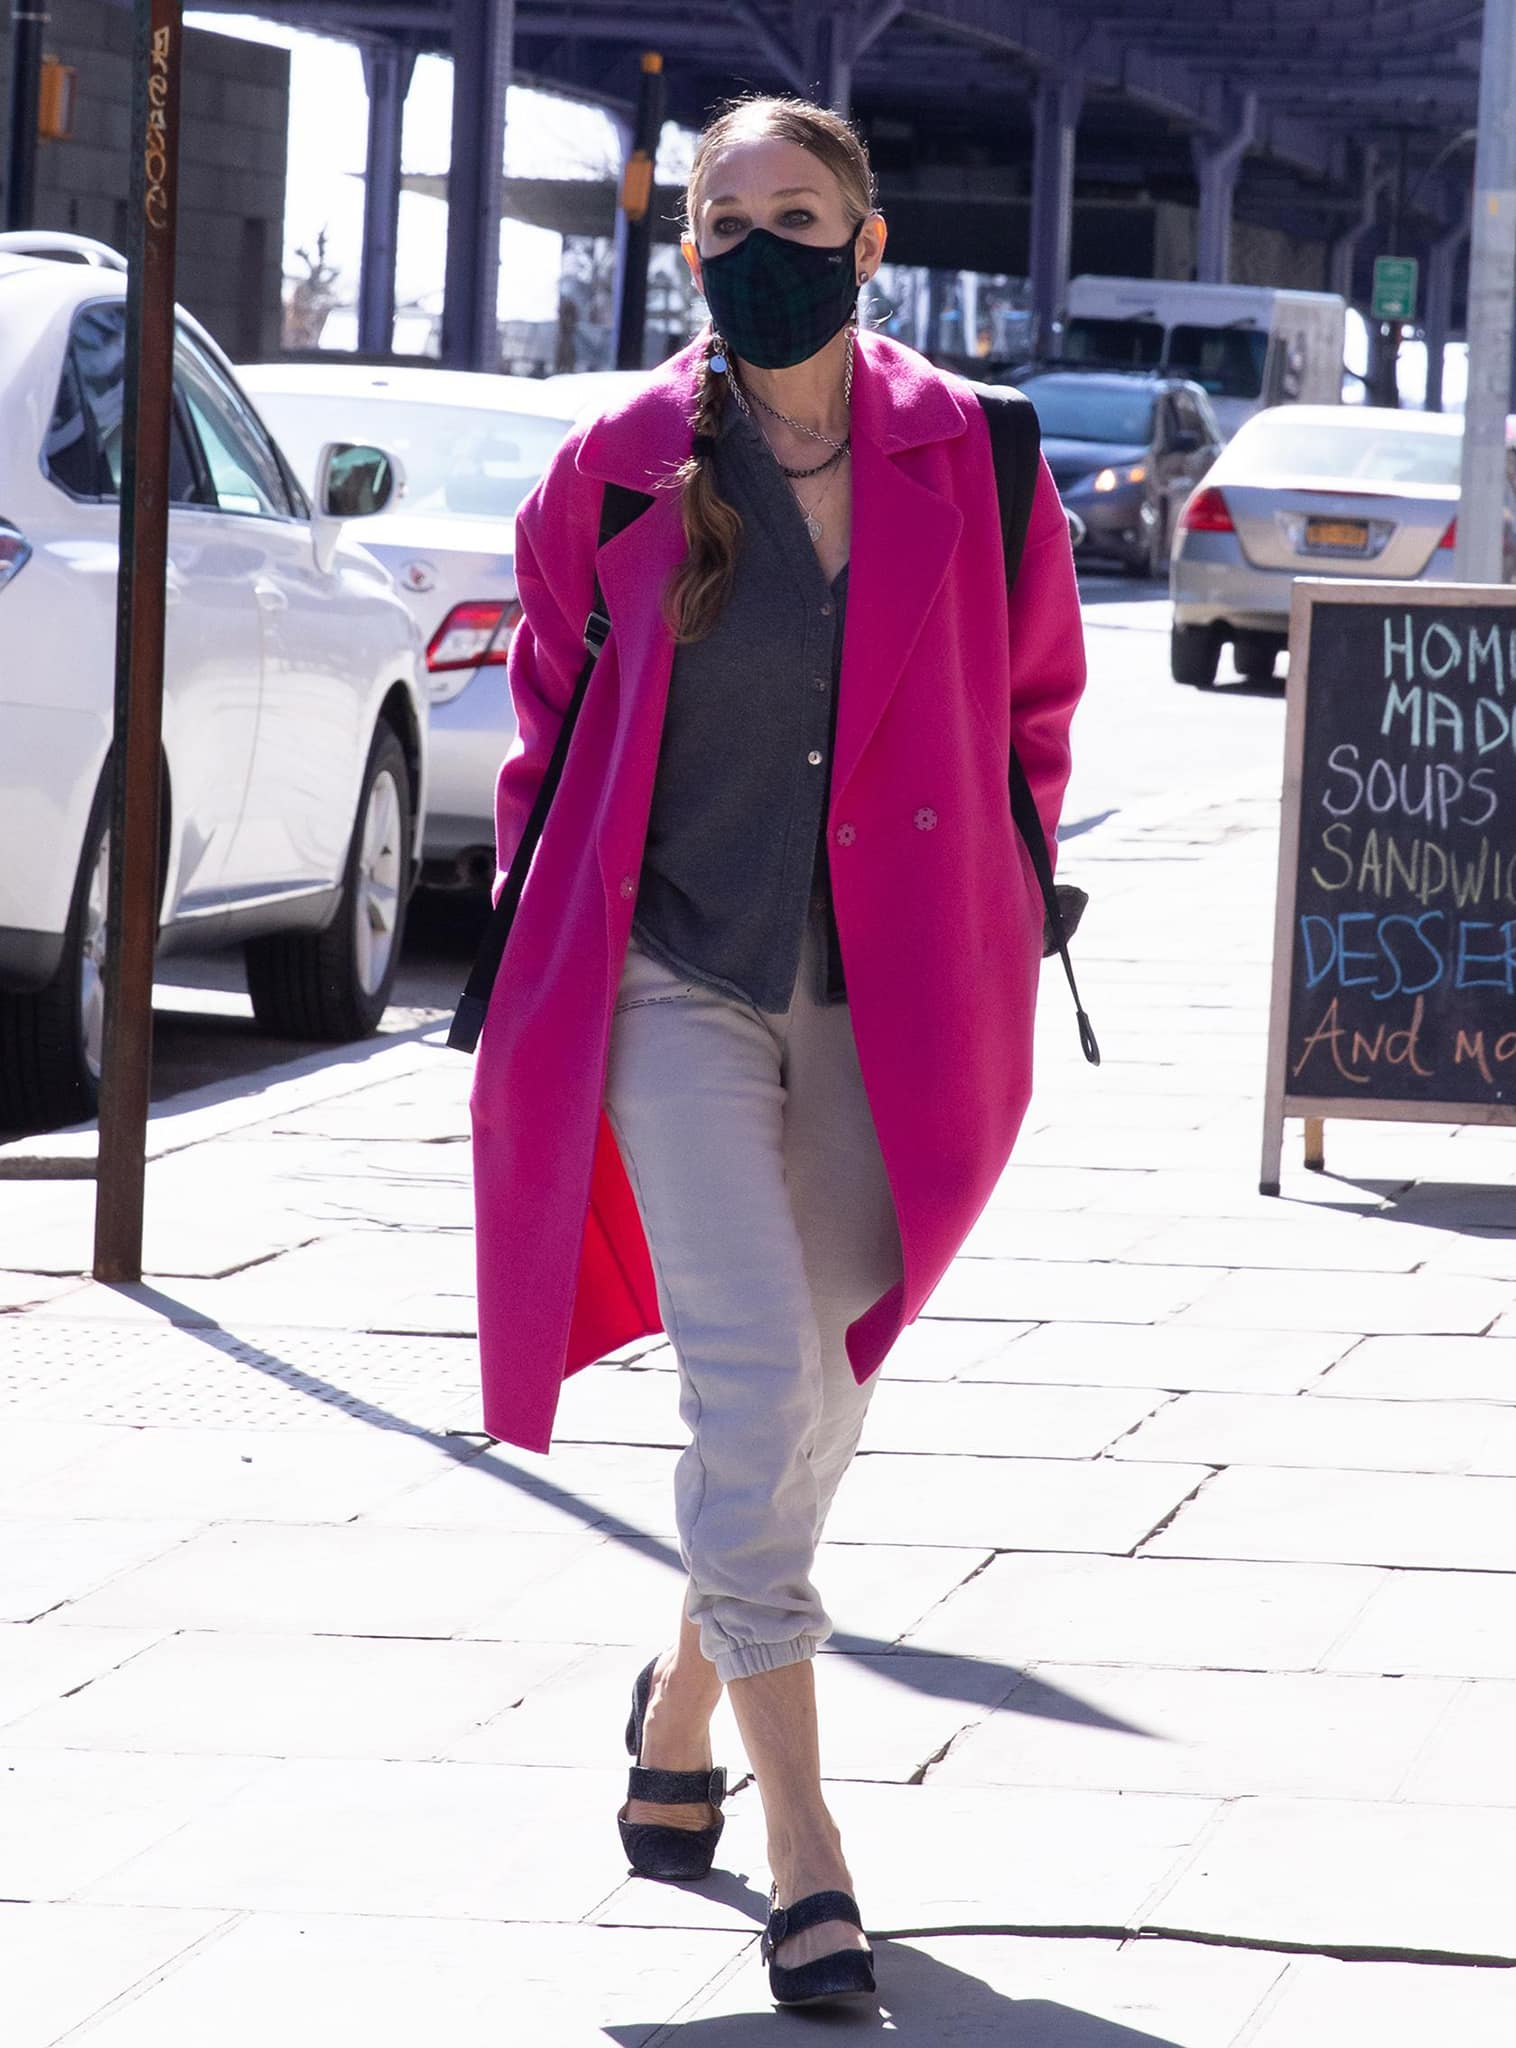 Sarah Jessica Parker visits her Downtown, New York store in Pangaia track pants and a pink Gerard Darel coat